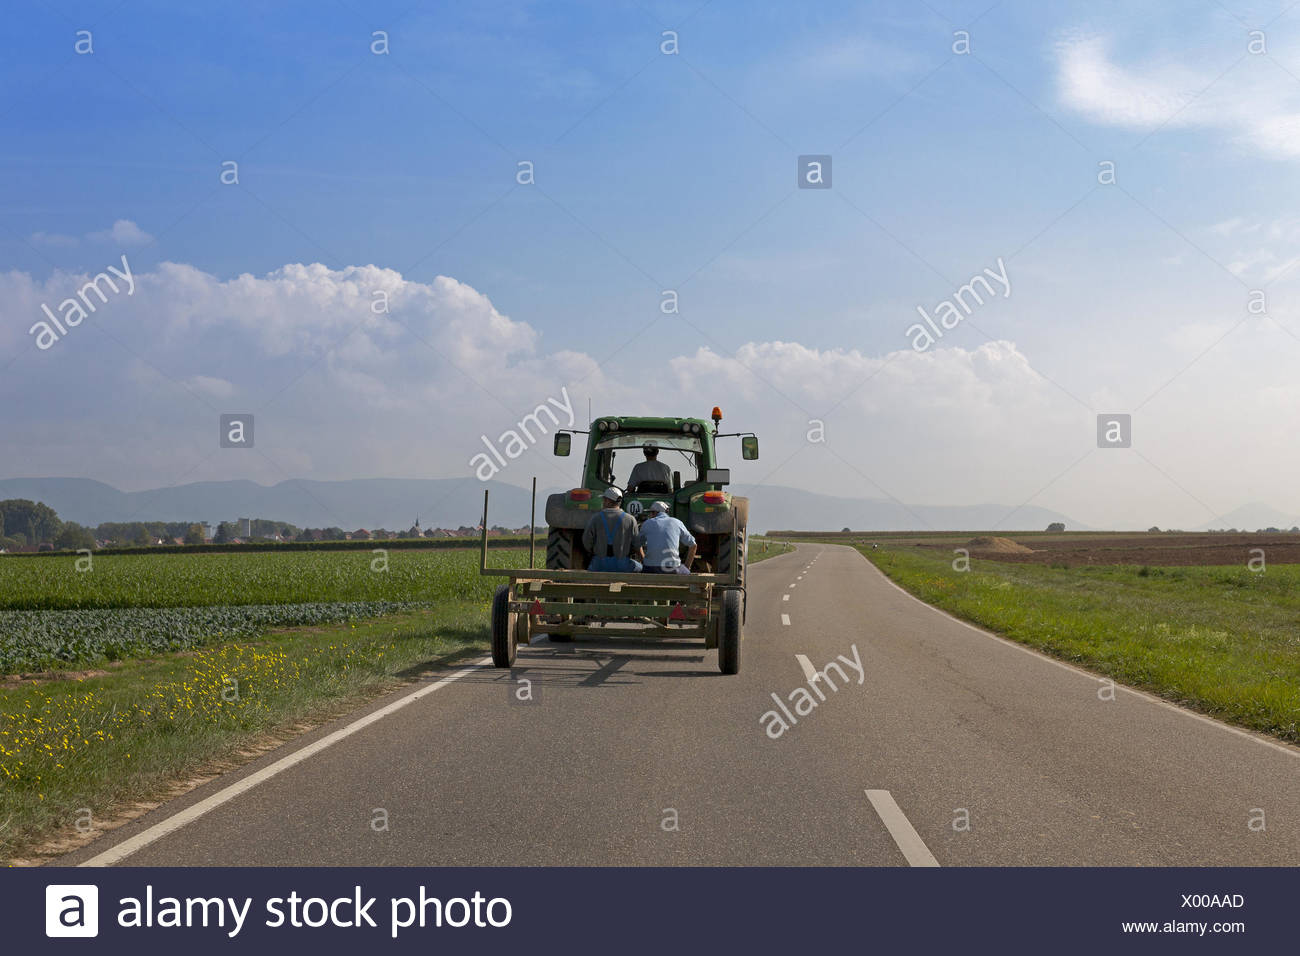 On the way to work - Stock Image